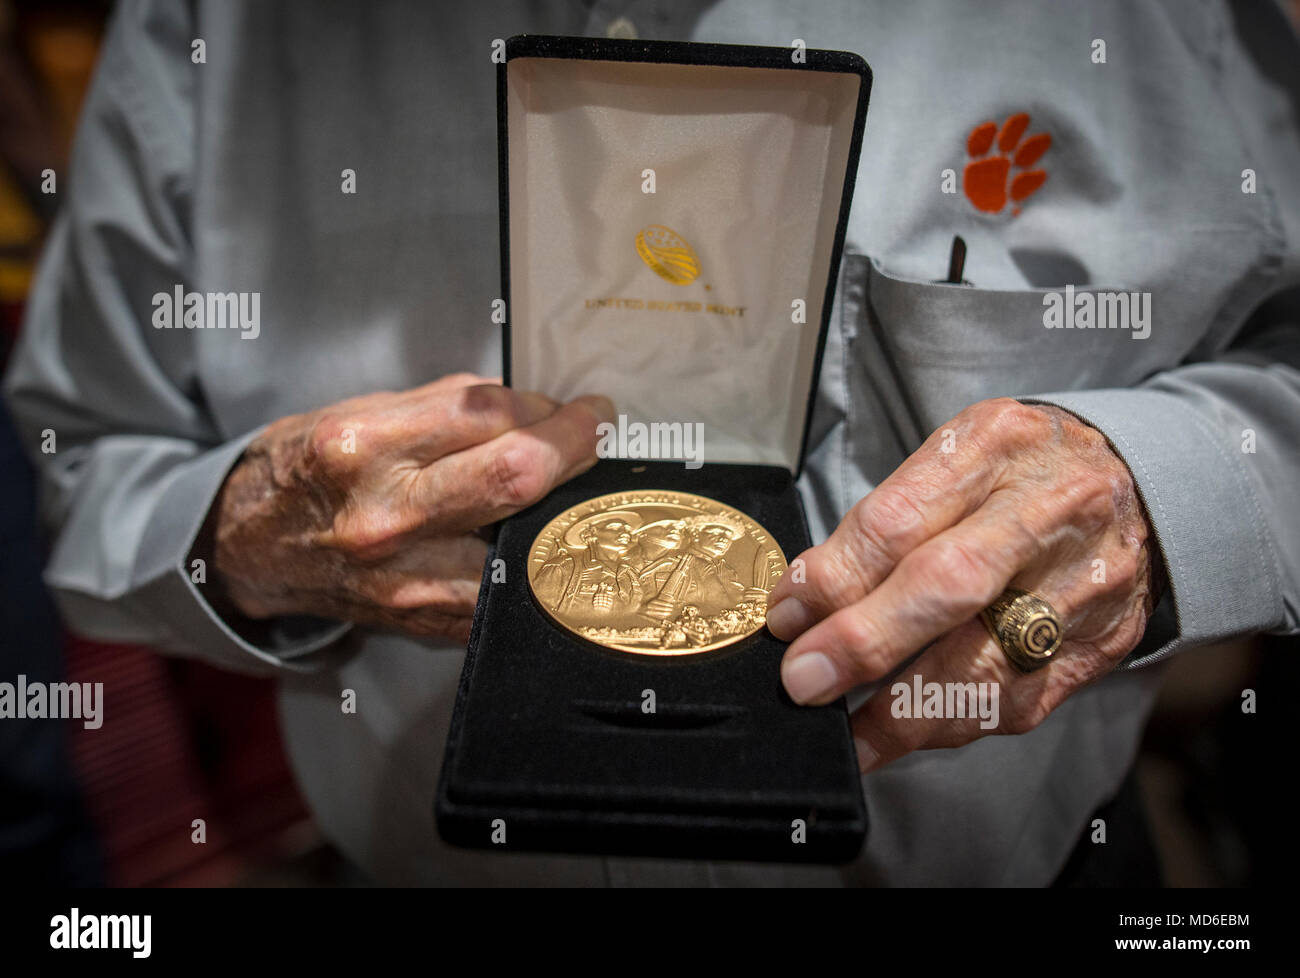 100-year-old Bataan Death March survivor Col. Ben Skardon, a revered Clemson University alumnus and professor emeritus, holds his Filipino World War II Veterans Congressional Gold Medal after a ceremony at White Sands Missile Range, March 24, 2018. (Photo by Ken Scar) - Stock Image